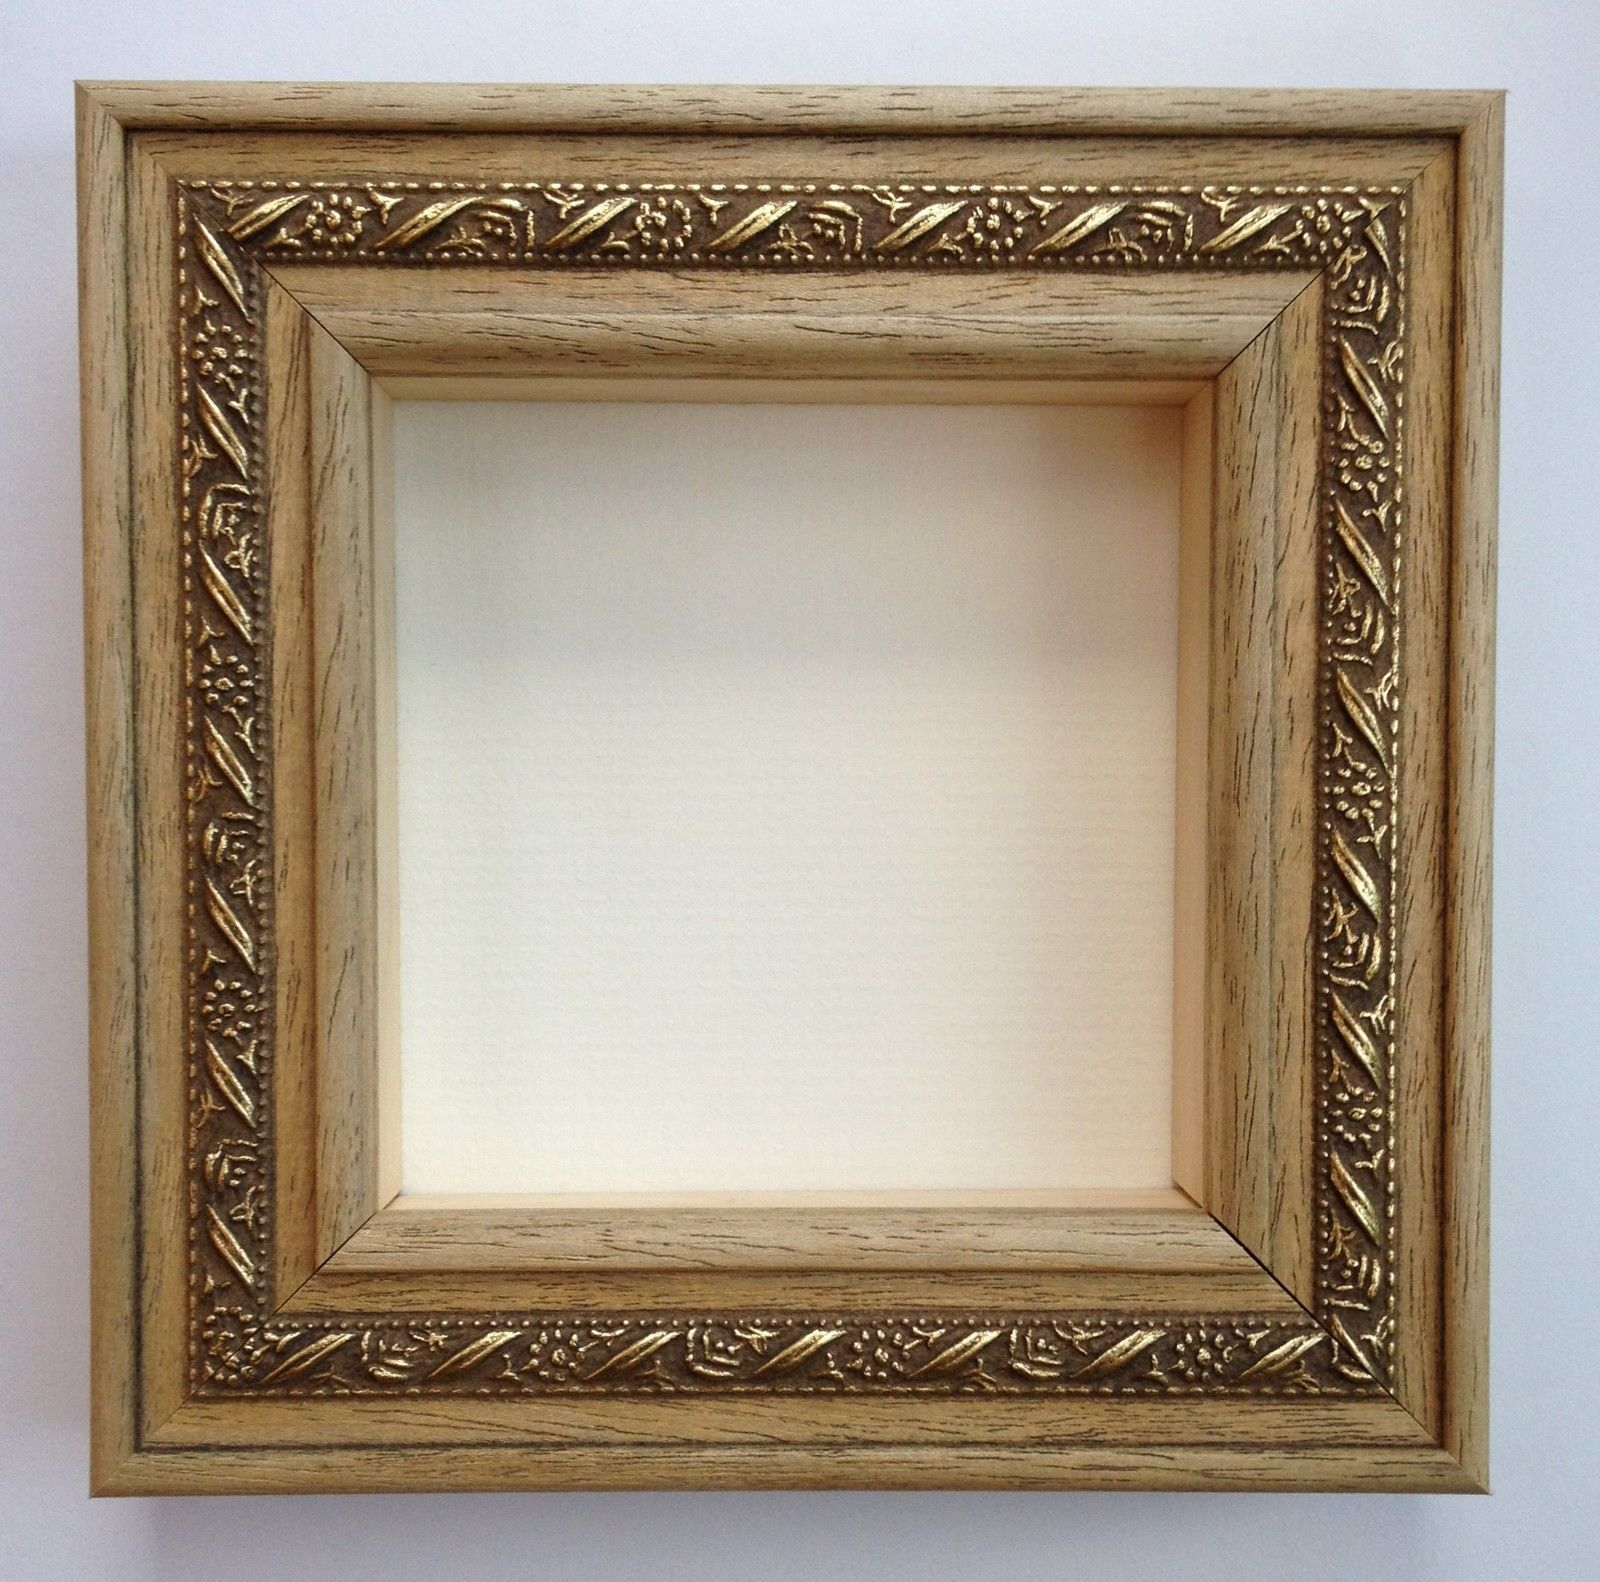 CLEARANCE* NATURAL WOOD 3D BOX FRAME-FOR FRAMING CASTS/MEDALS-4x4 ...